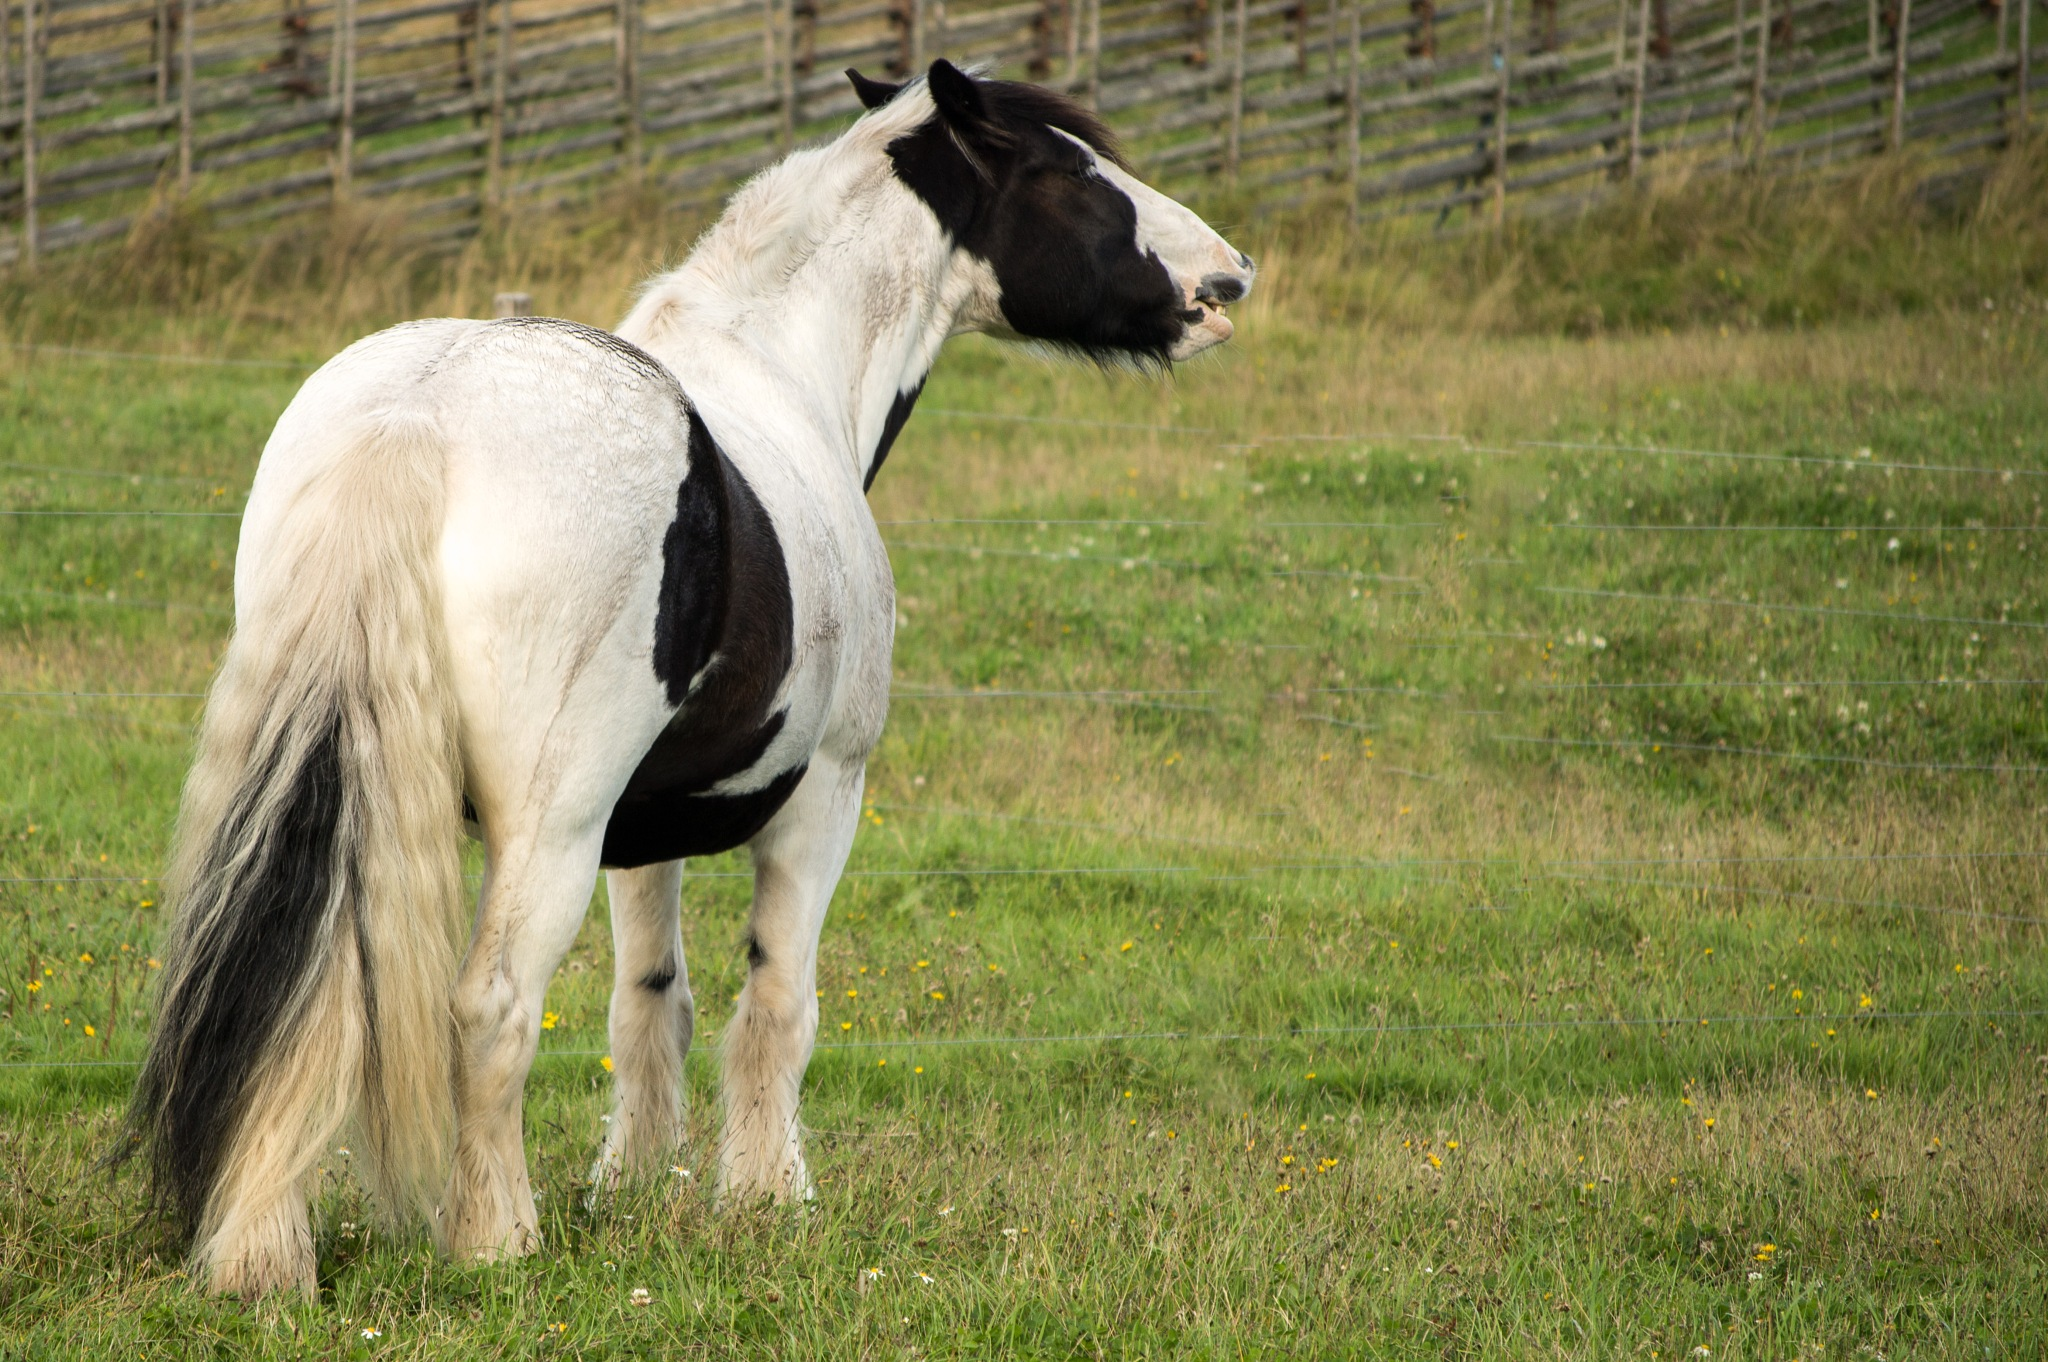 A horse by Micke Seise